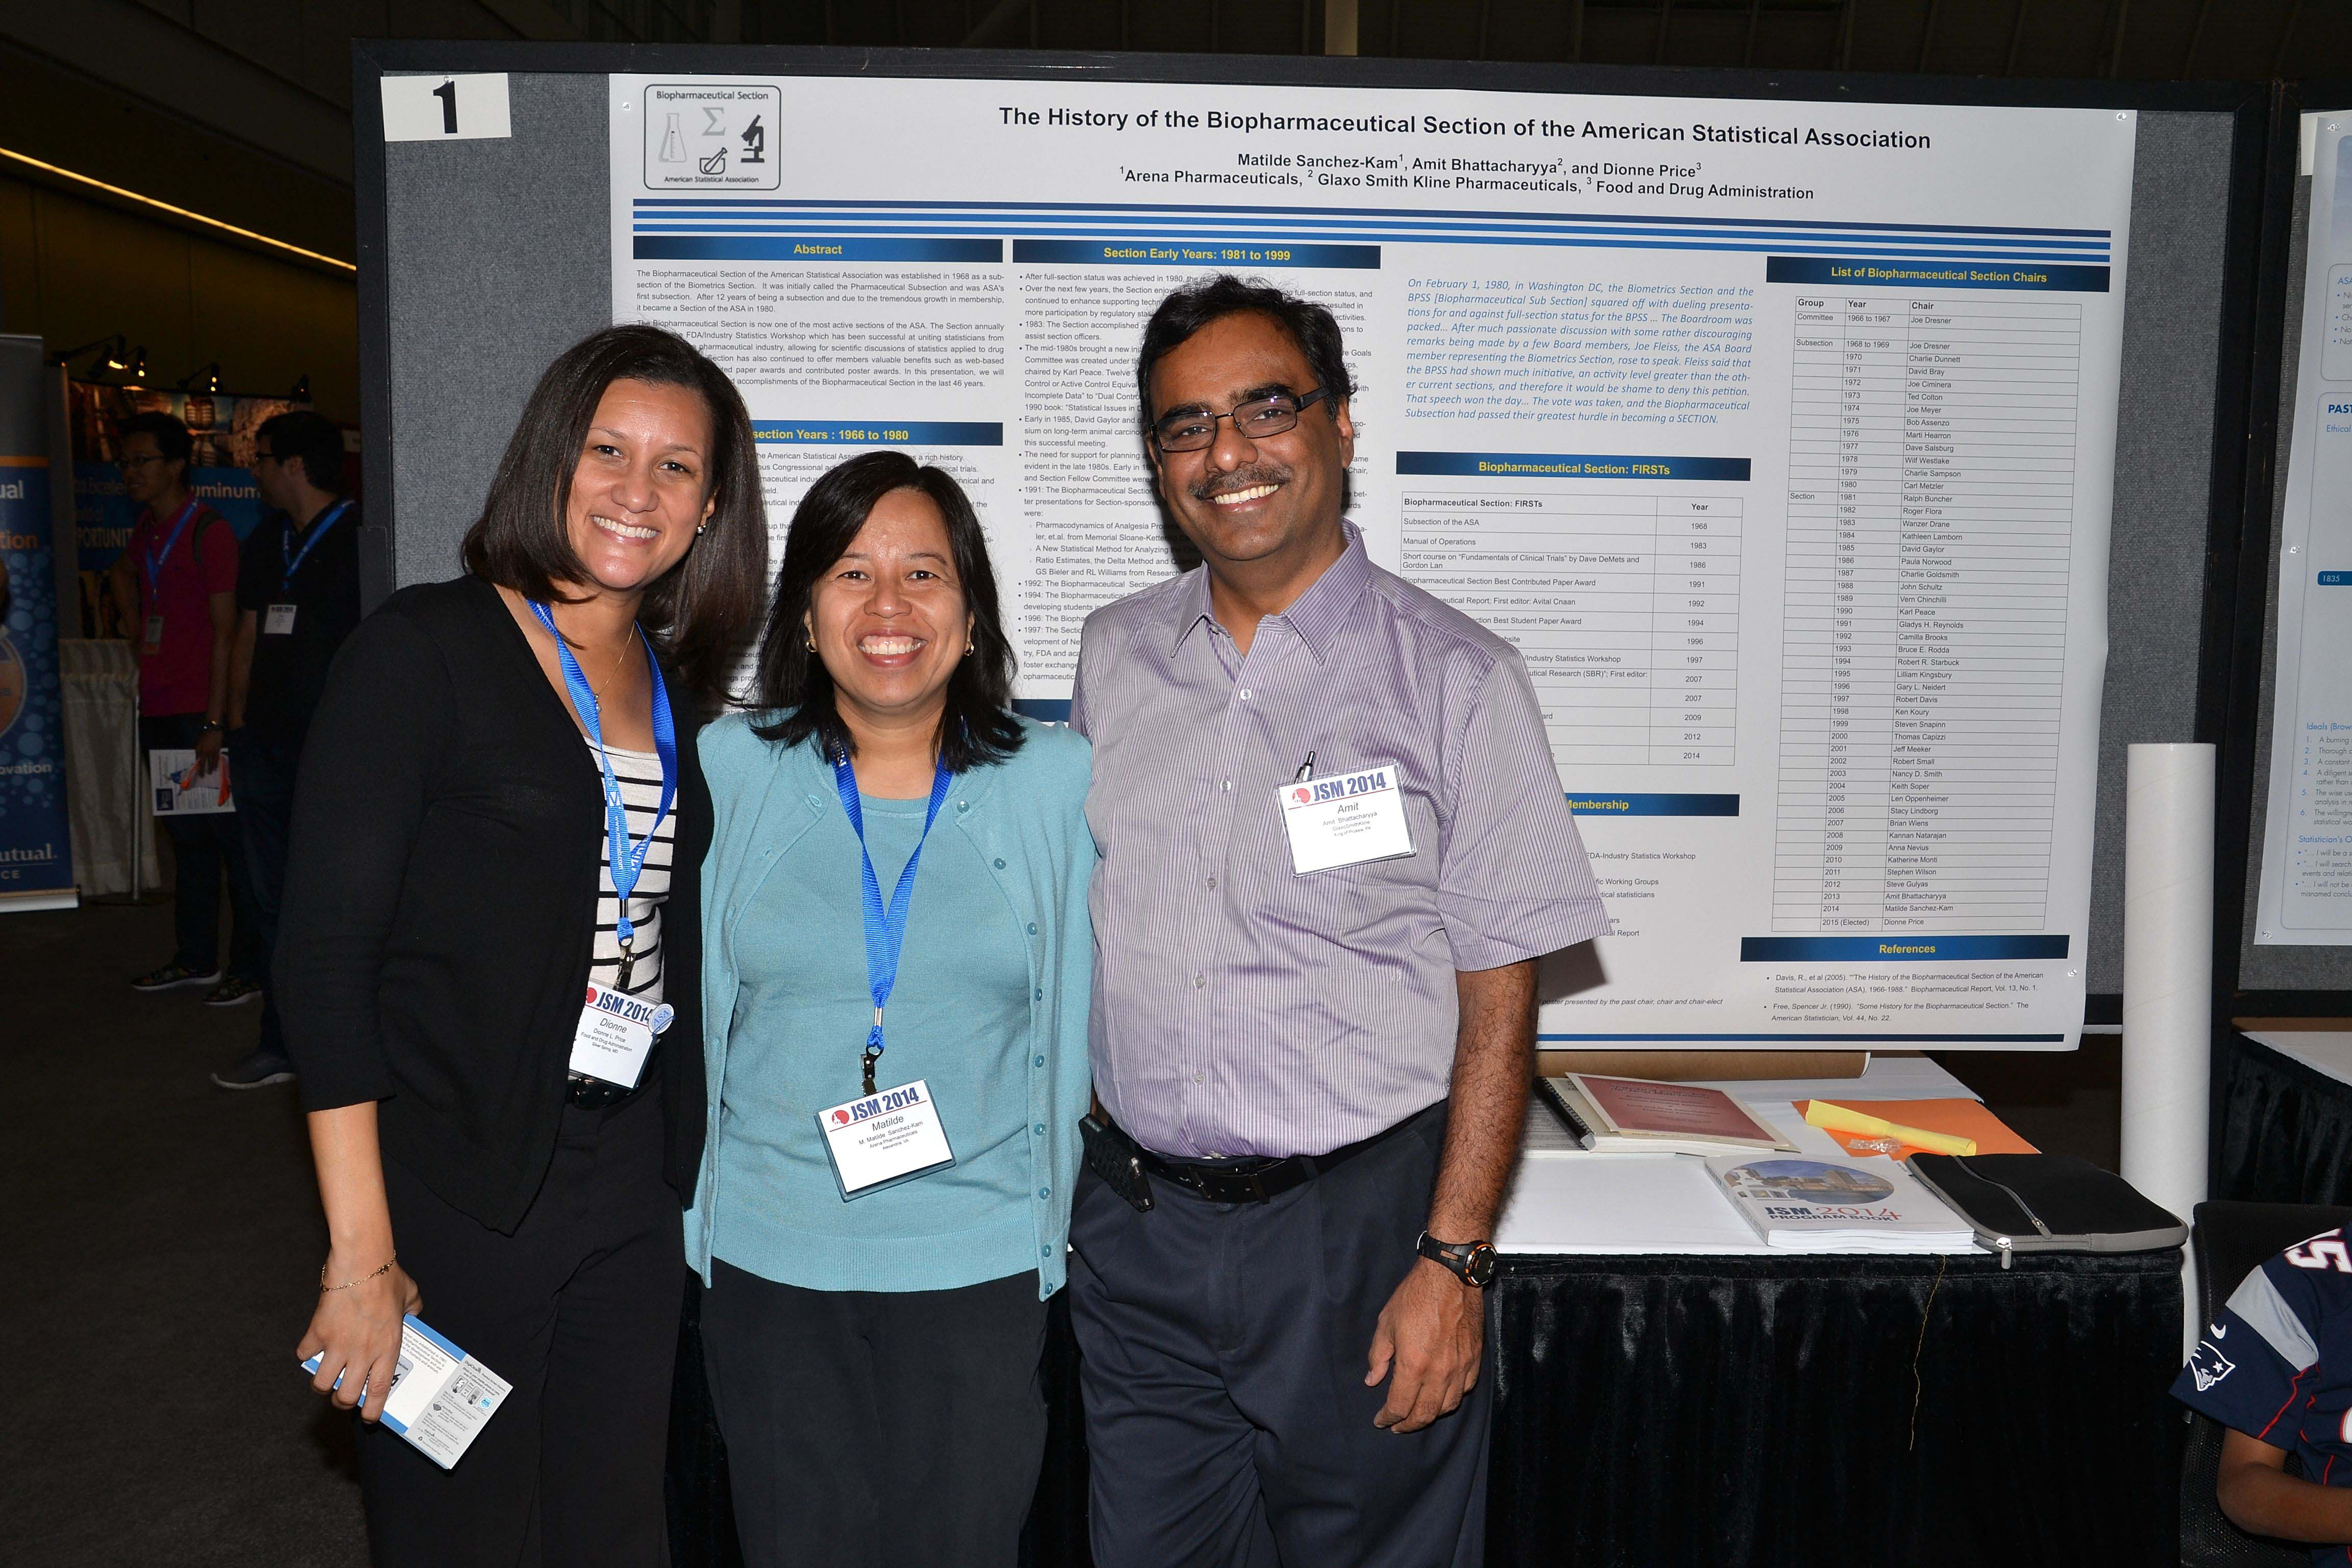 From left: Dionne Price, Maria Matilde Sanchez-Kam, and Amit Bhattacharyya present a poster about the history of the Biopharmaceutical Section